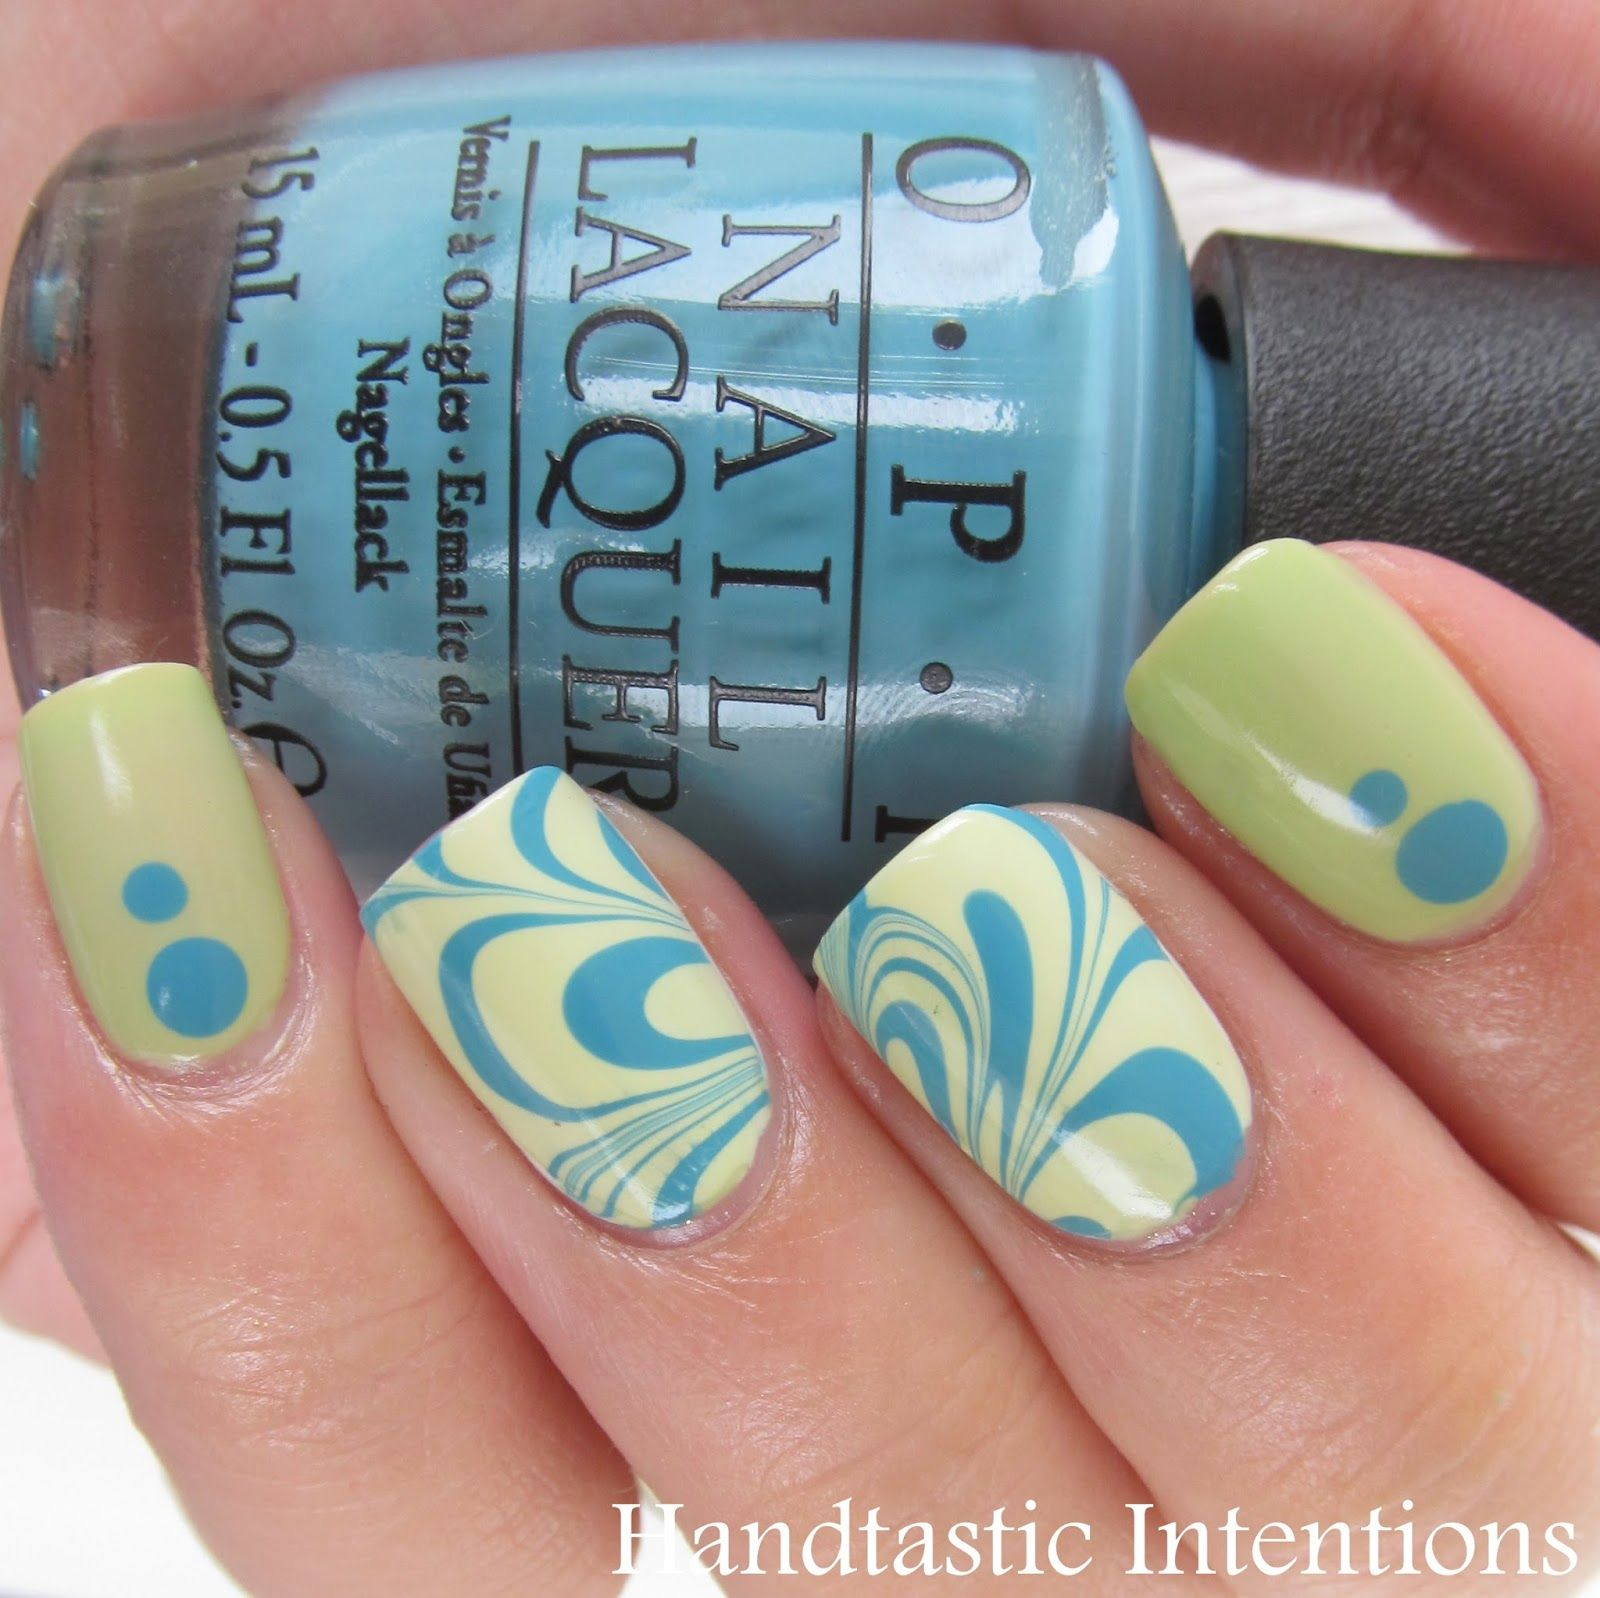 Handtastic Intentions: Spring Inspired Water Marble | Nail Art ...